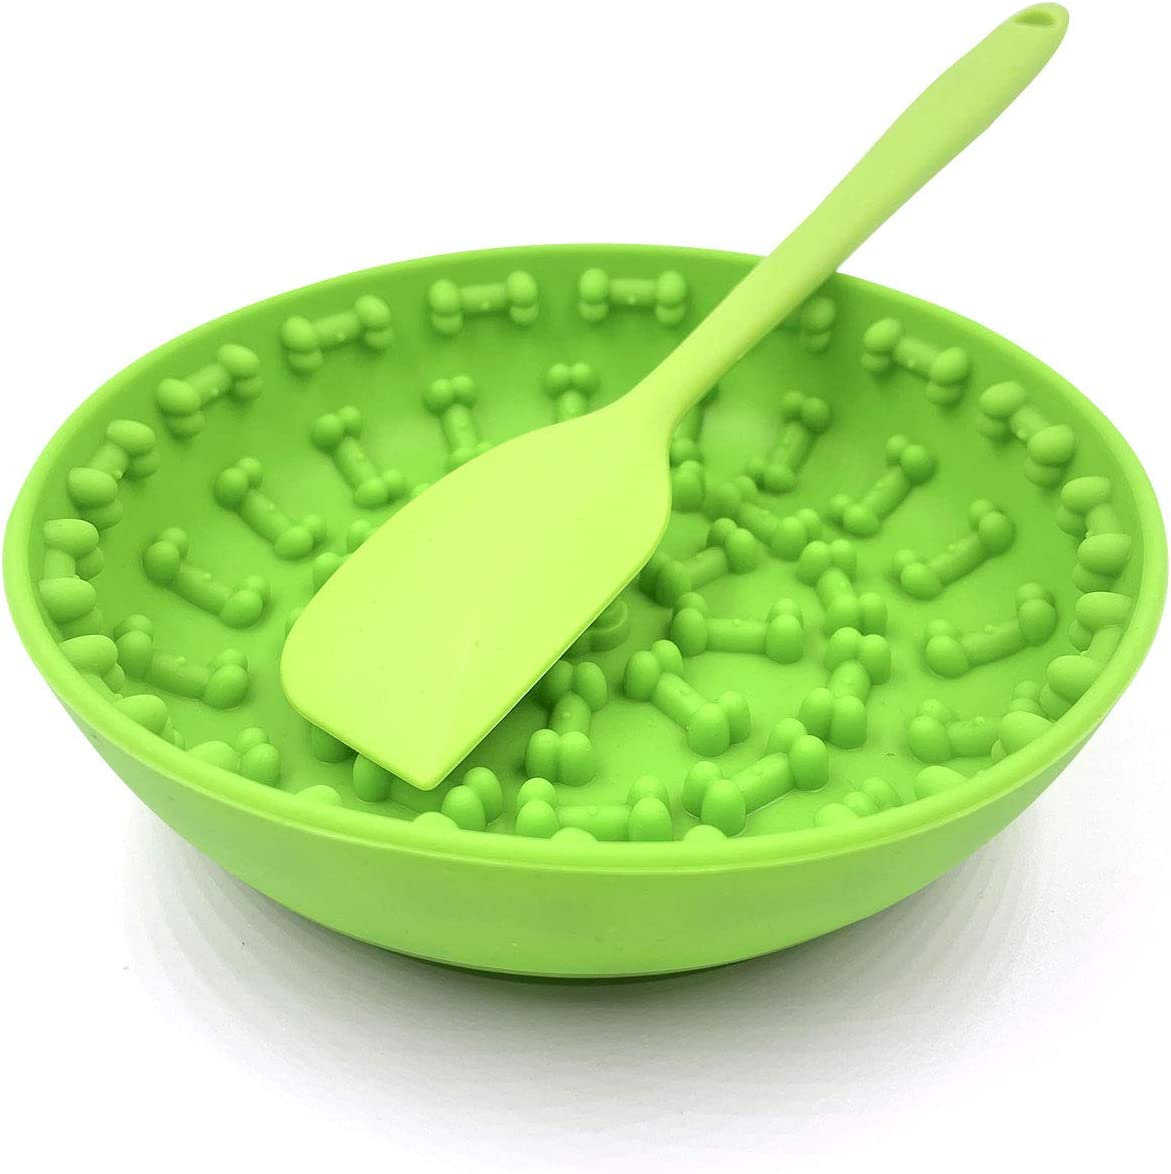 NKZ Slow Feeder Dog Bowls, Suction Cup Medium Large Sized Dog Lick Mat Puppy Puzzle Food and Water Slow Feeder Bowl for Dogs (Green)